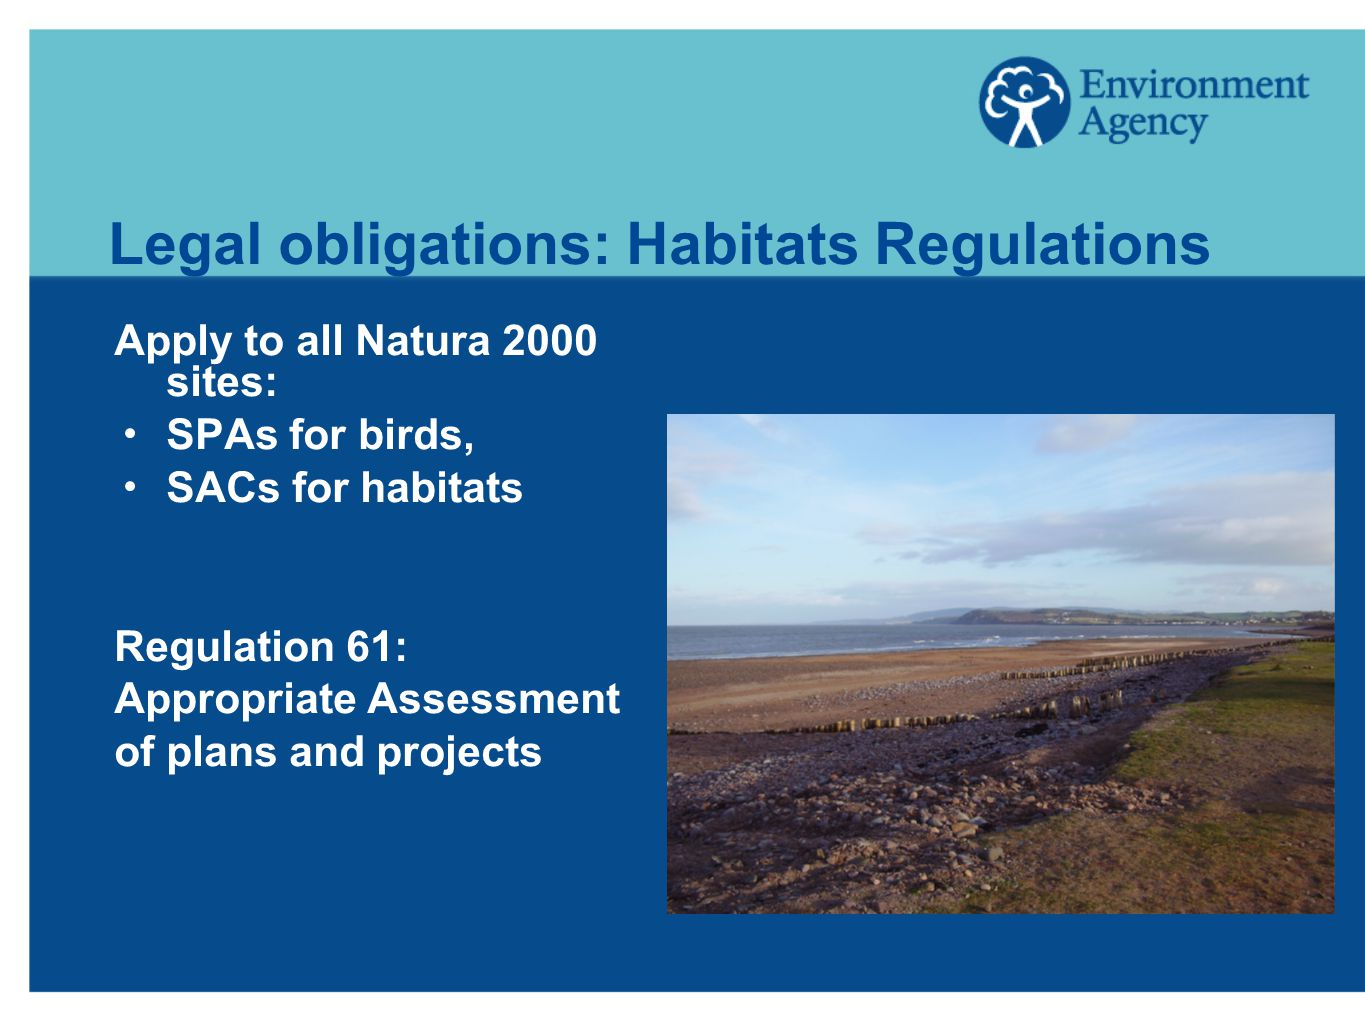 Legal obligations: Habitats Regulations Apply to all Natura 2000 sites:  SPAs for birds,  SACs for habitats Regulation 61: Appropriate Assessment of plans and projects